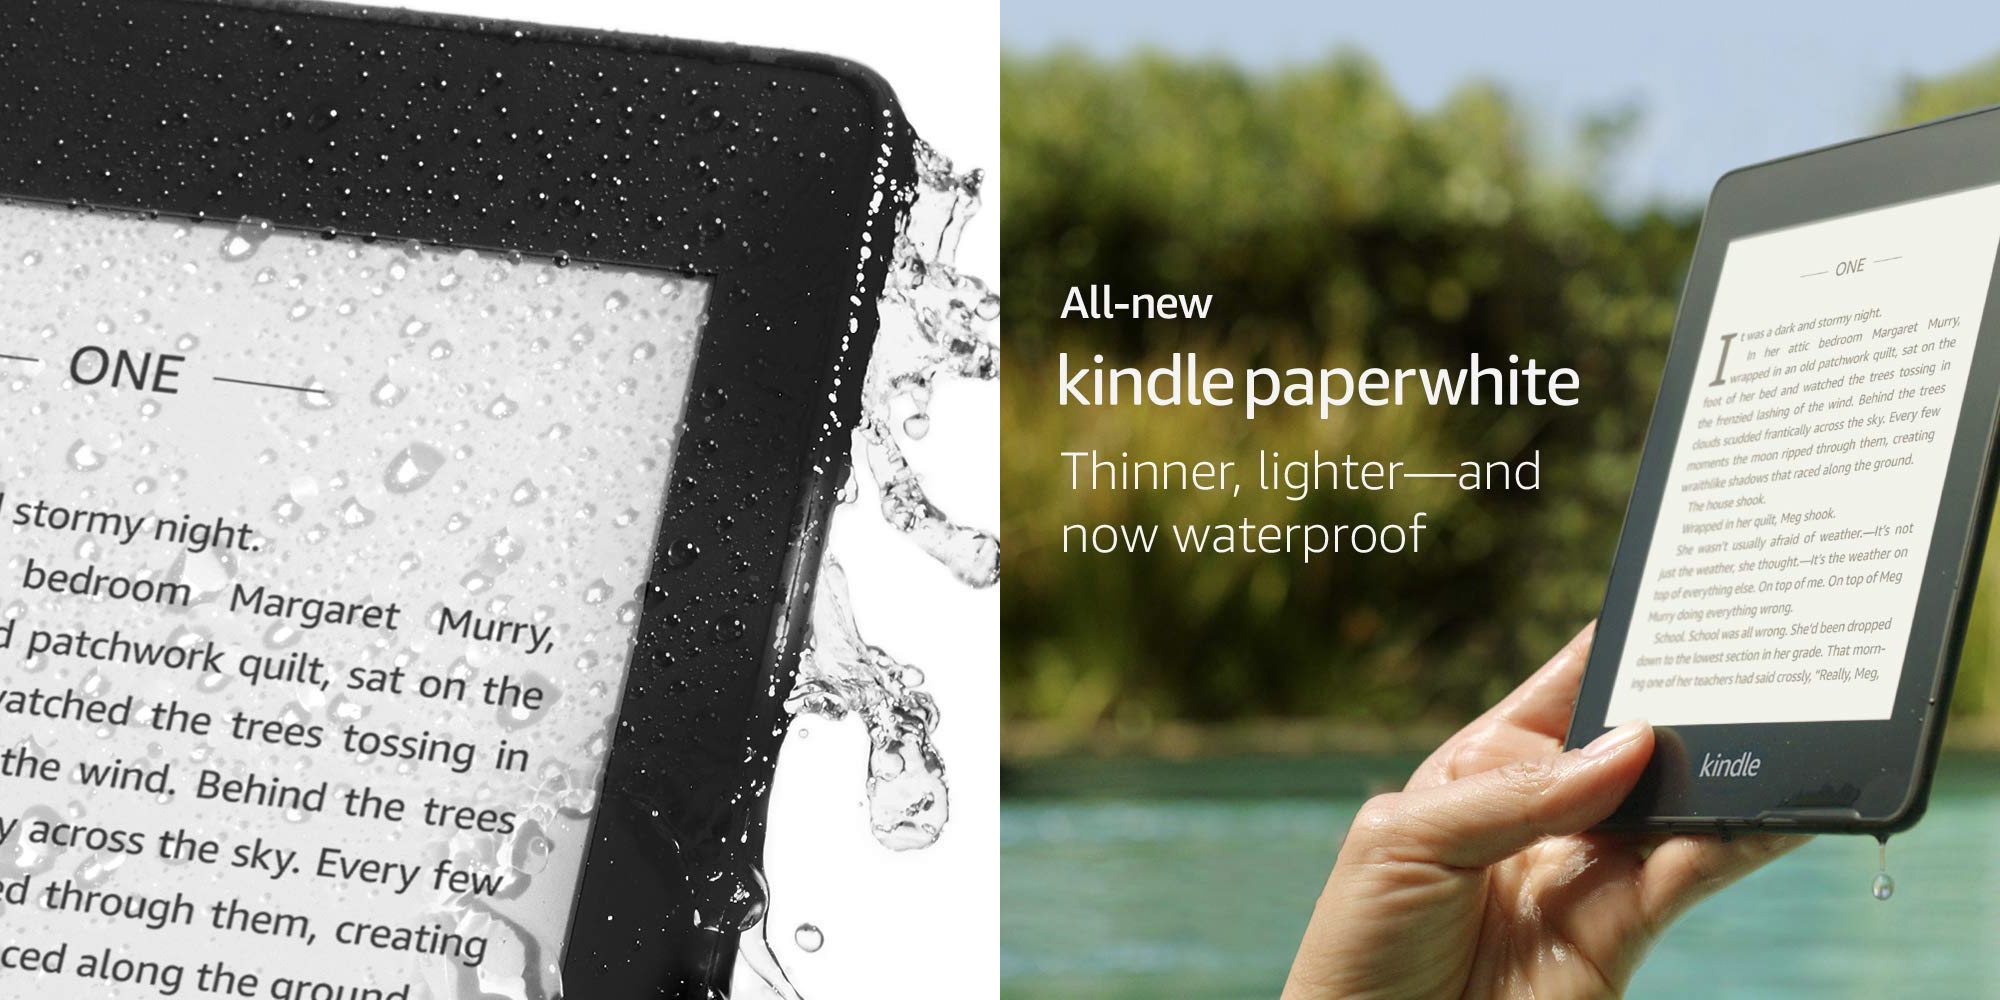 Amazon announces new Kindle Paperwhite with thinner, waterproof design